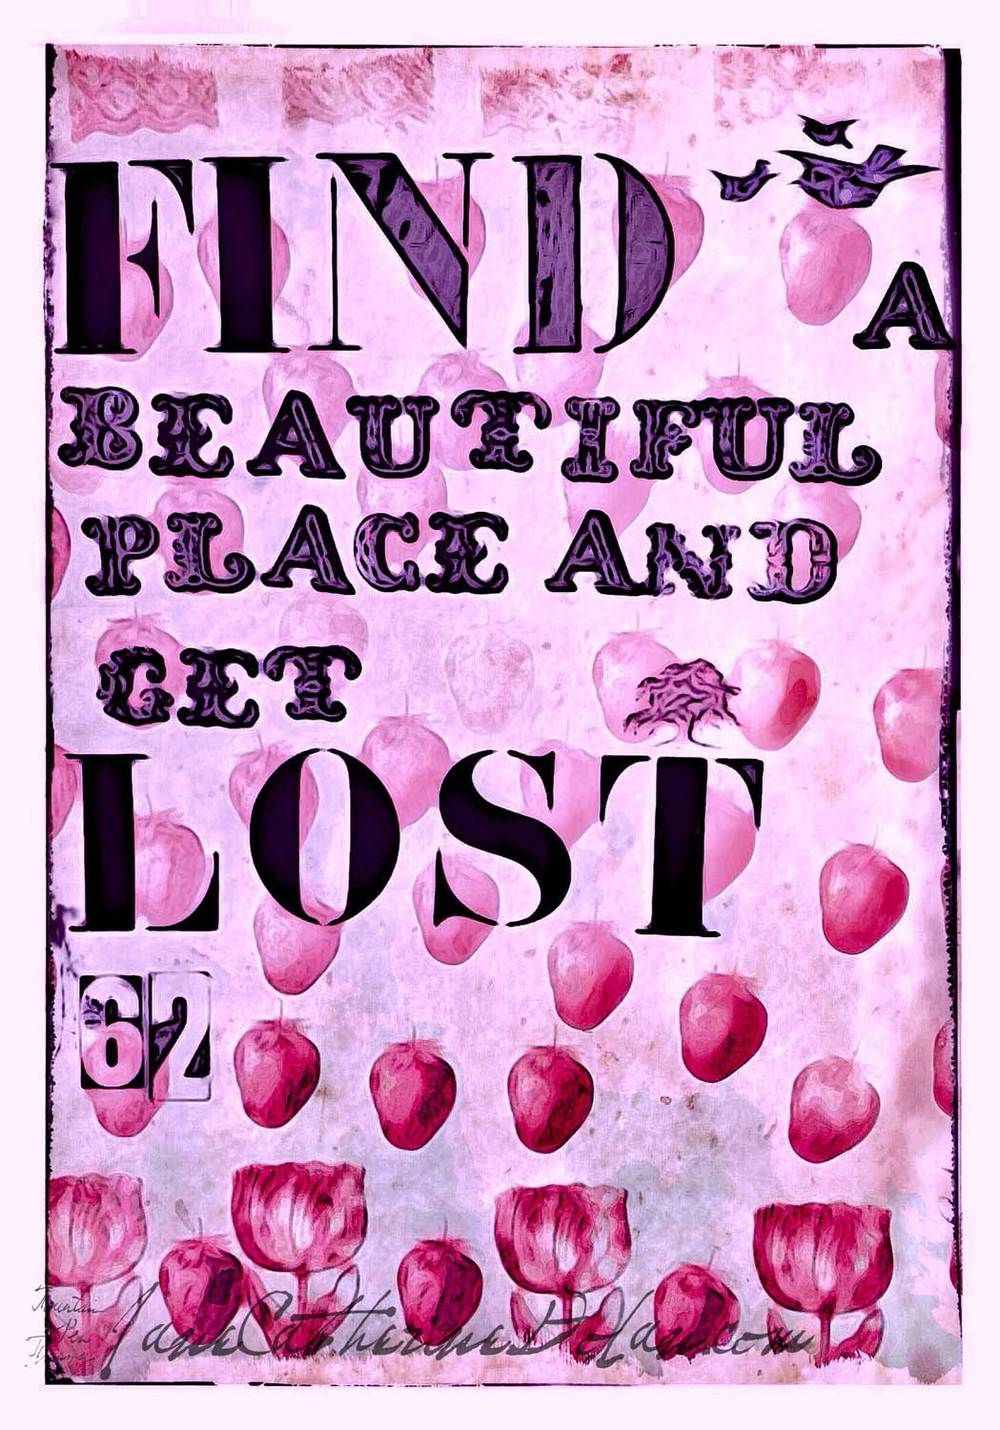 Quote_62_Find-a-beautiful-place-and-get-lost.jpg